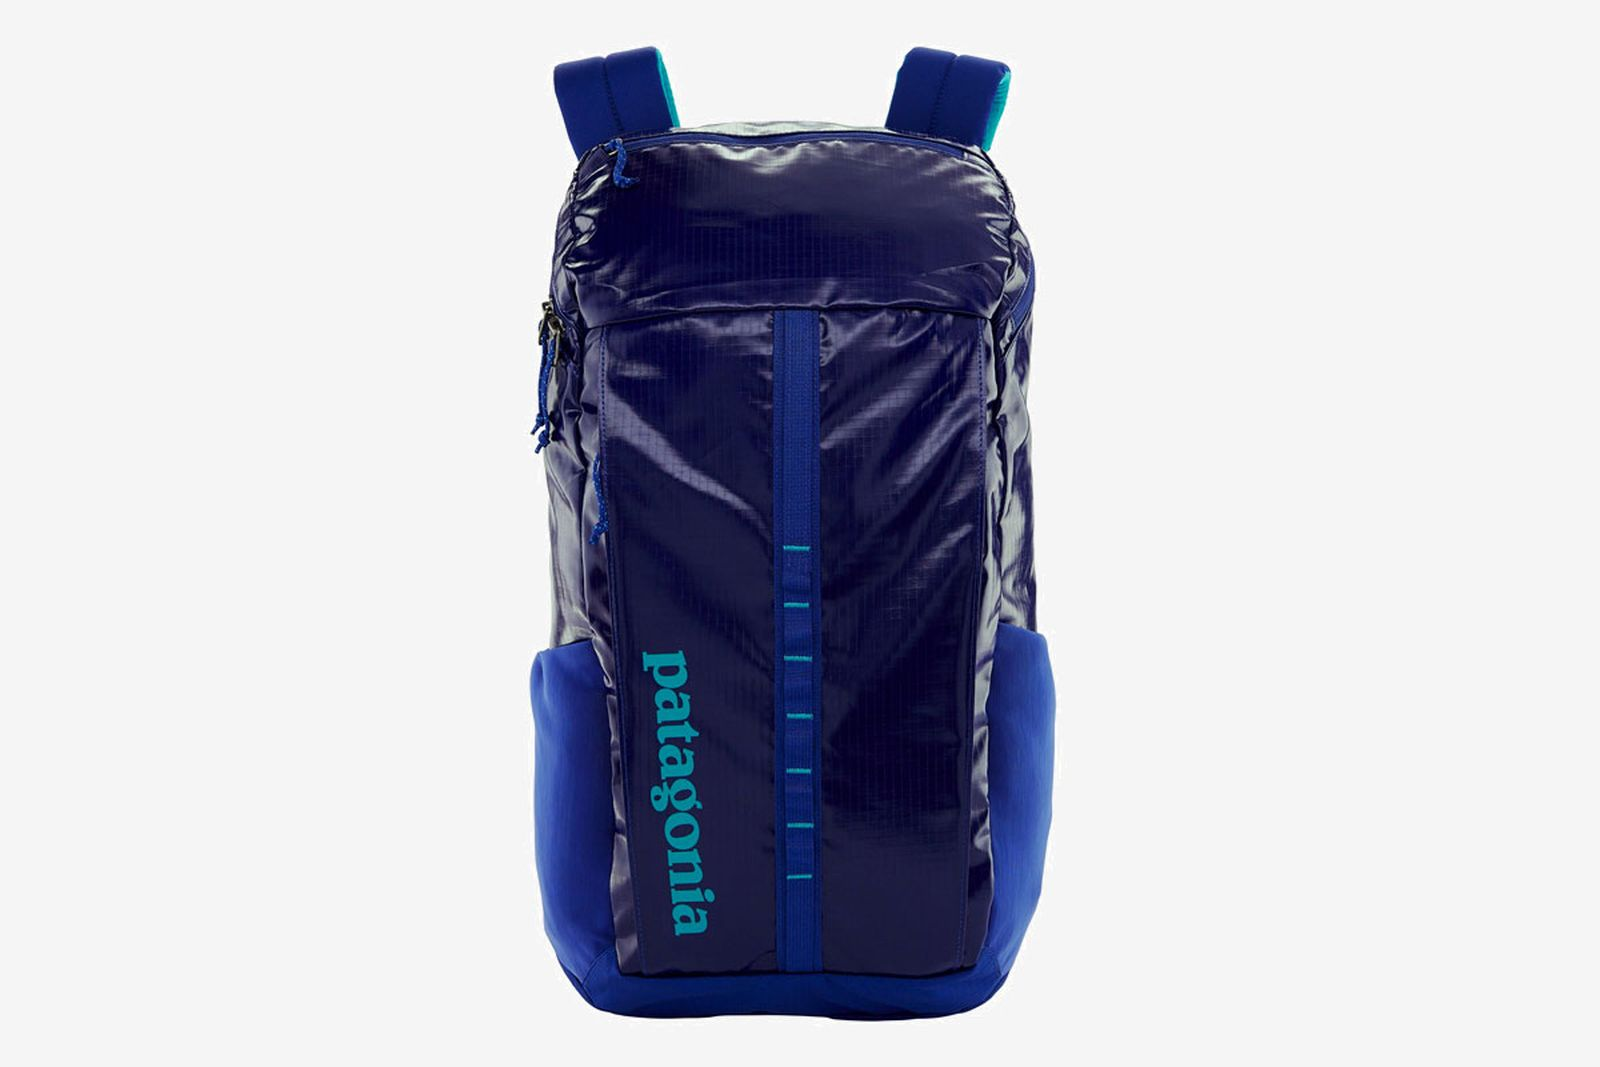 patagonia recycled bags